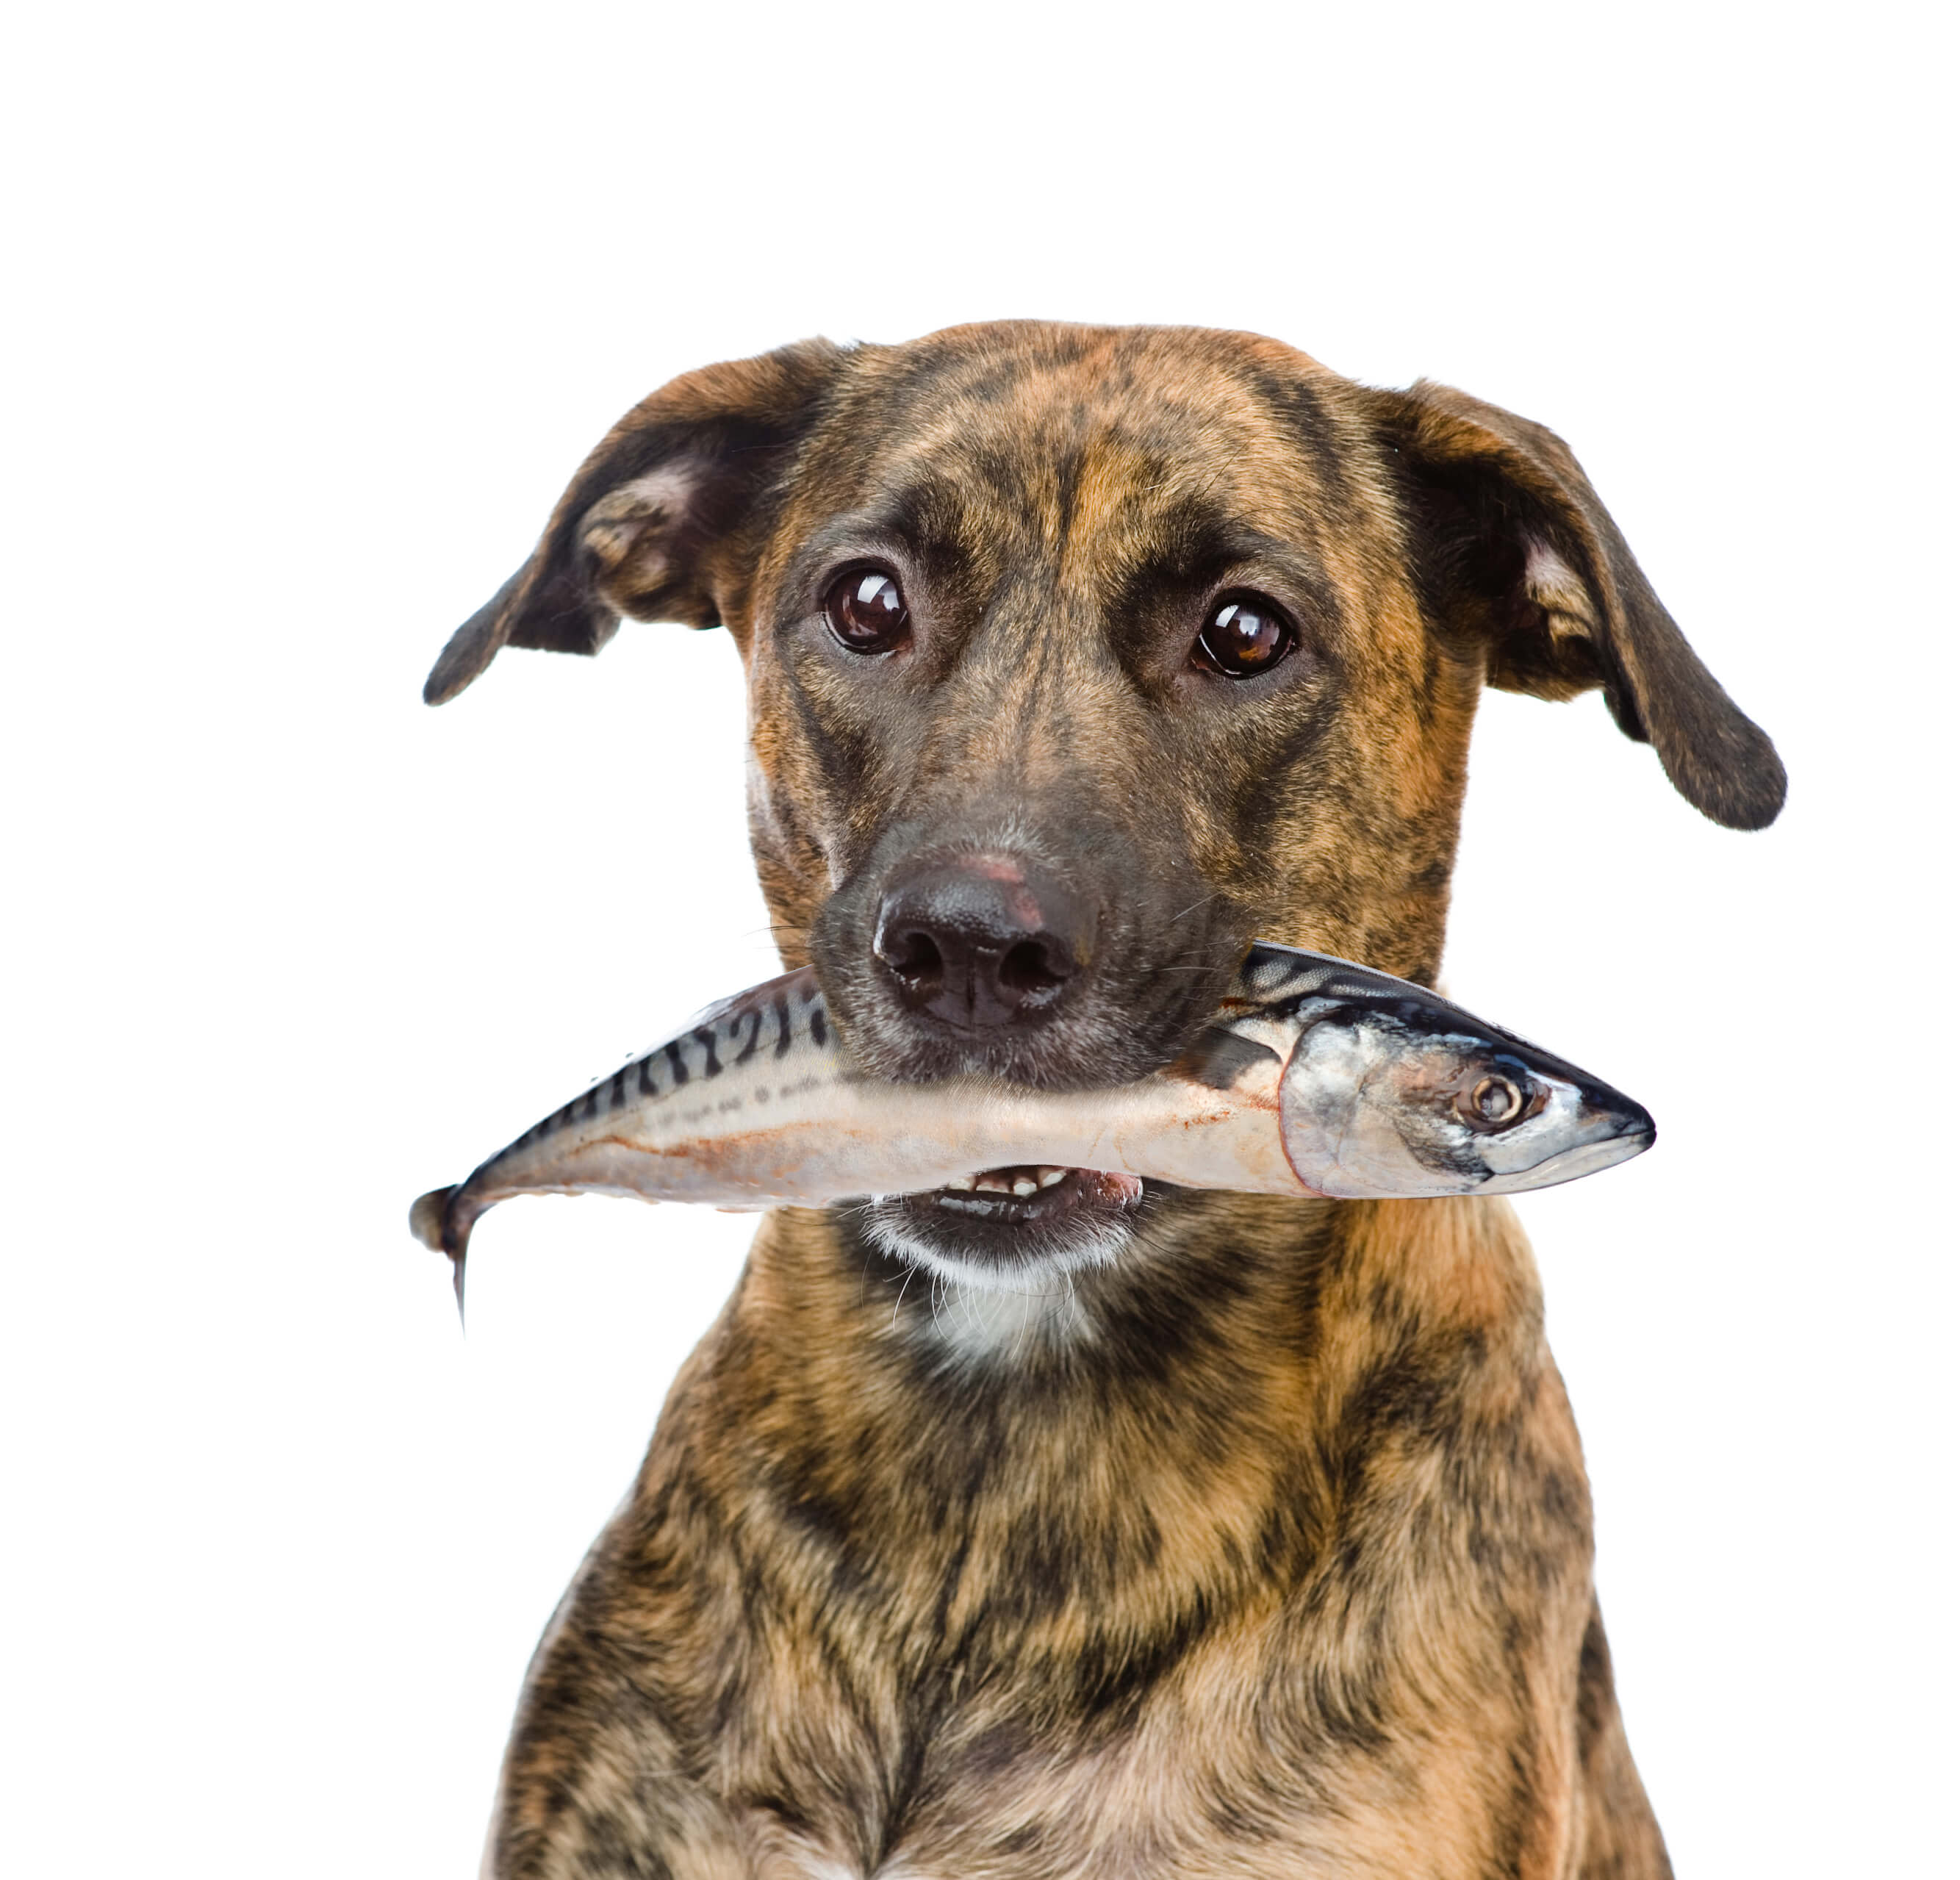 dog with fish in mouth